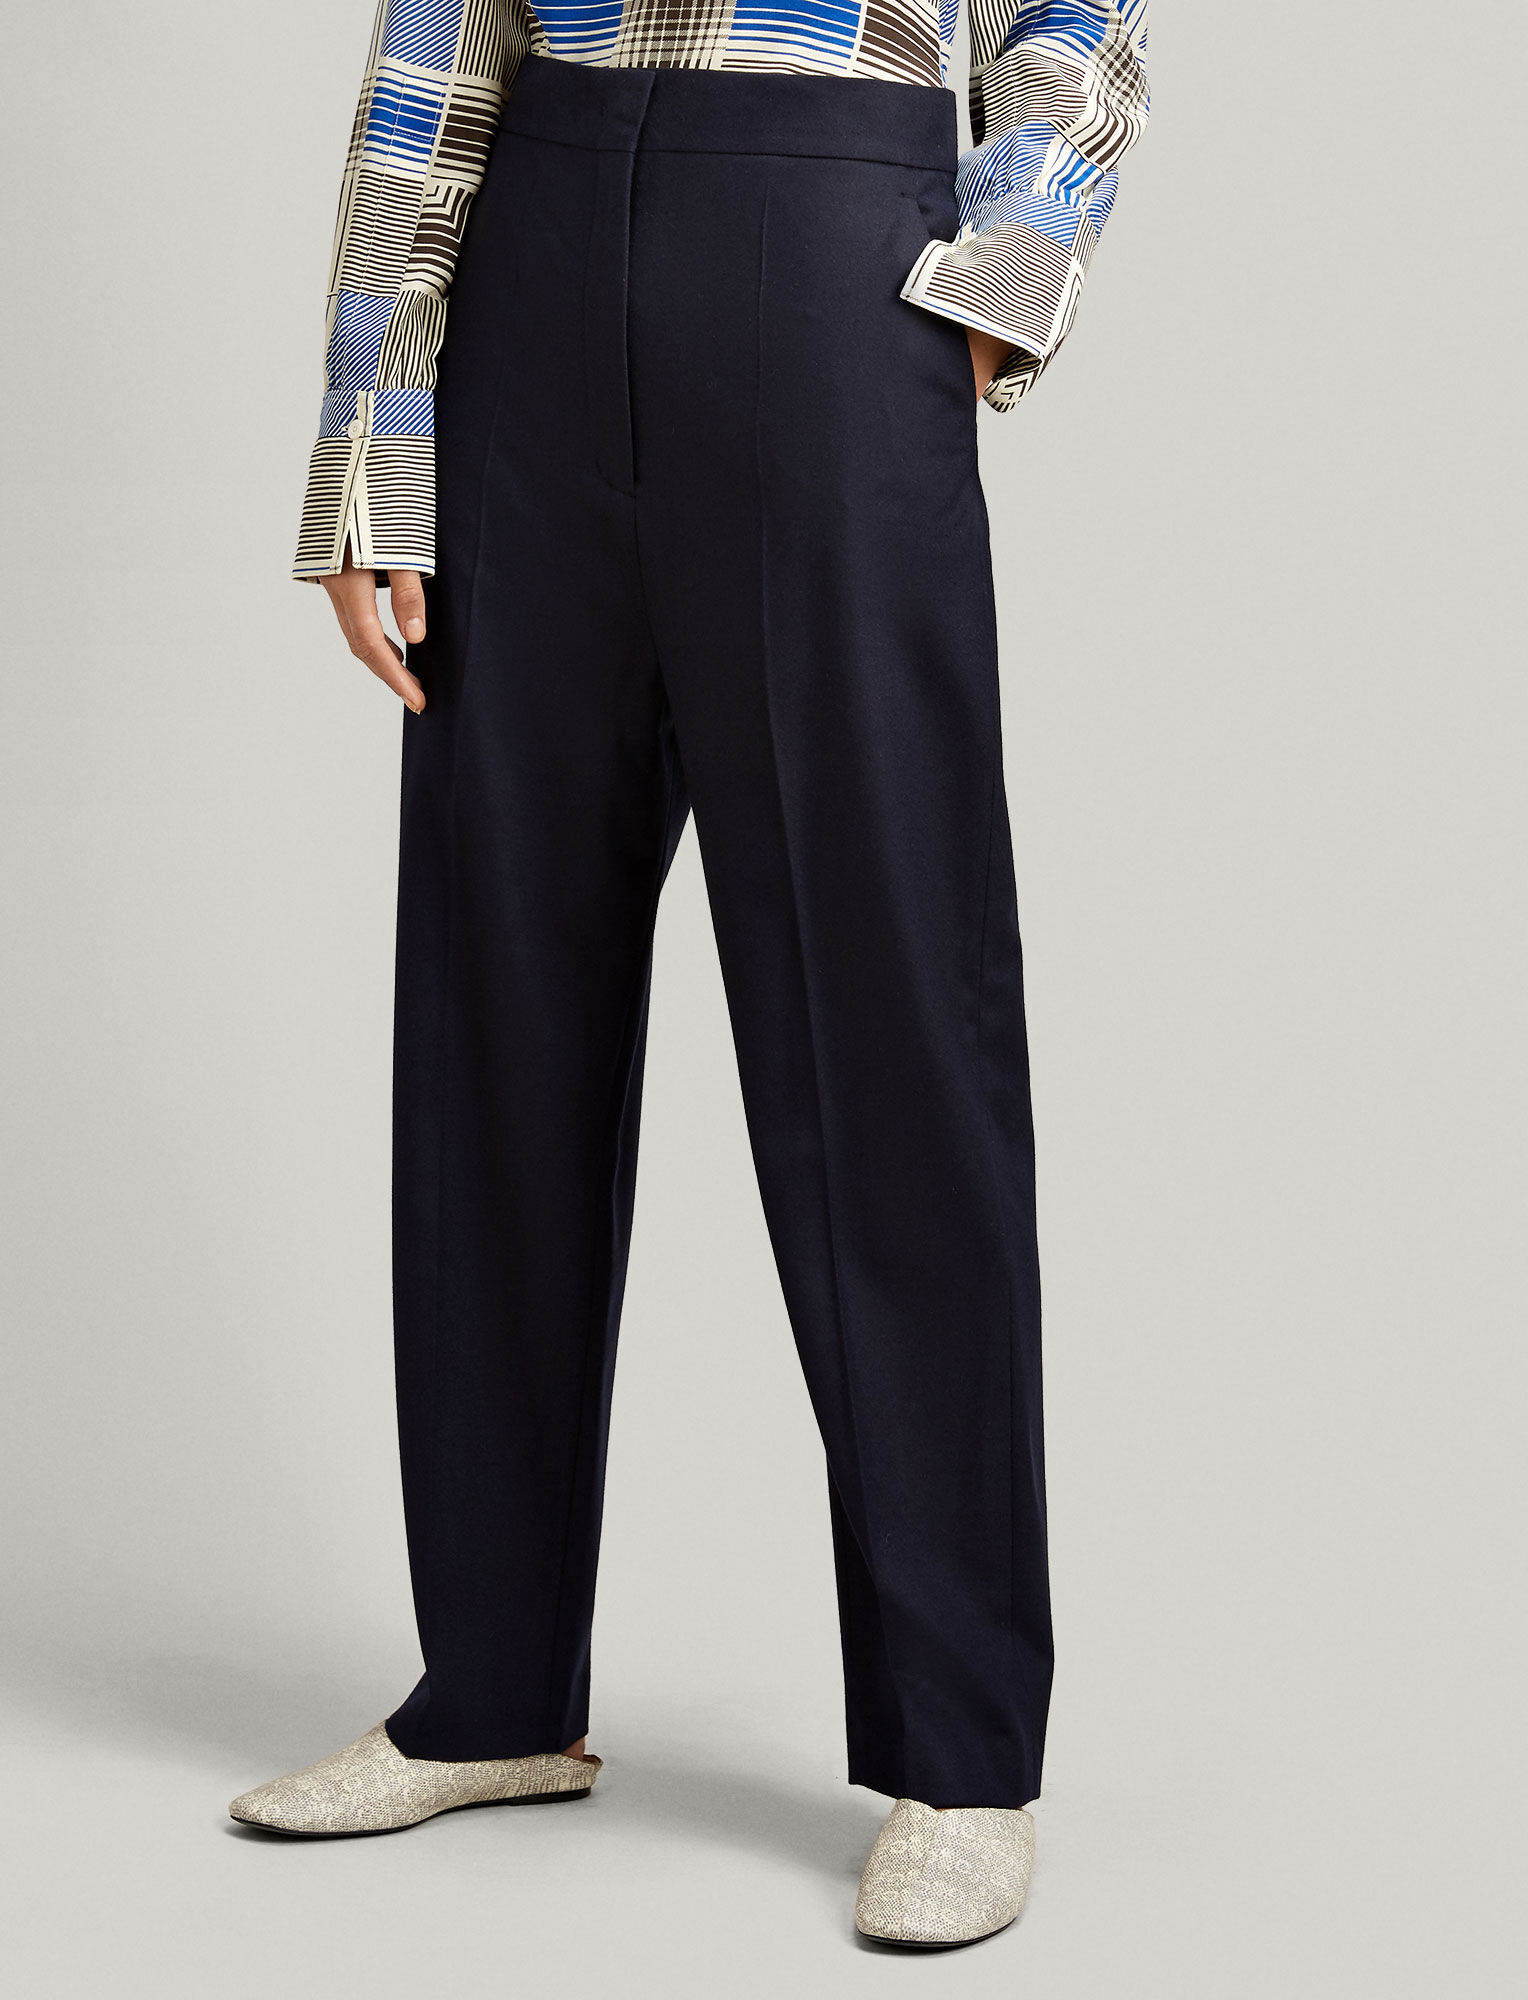 Joseph, Haim Flannel Stretch Trousers, in NAVY